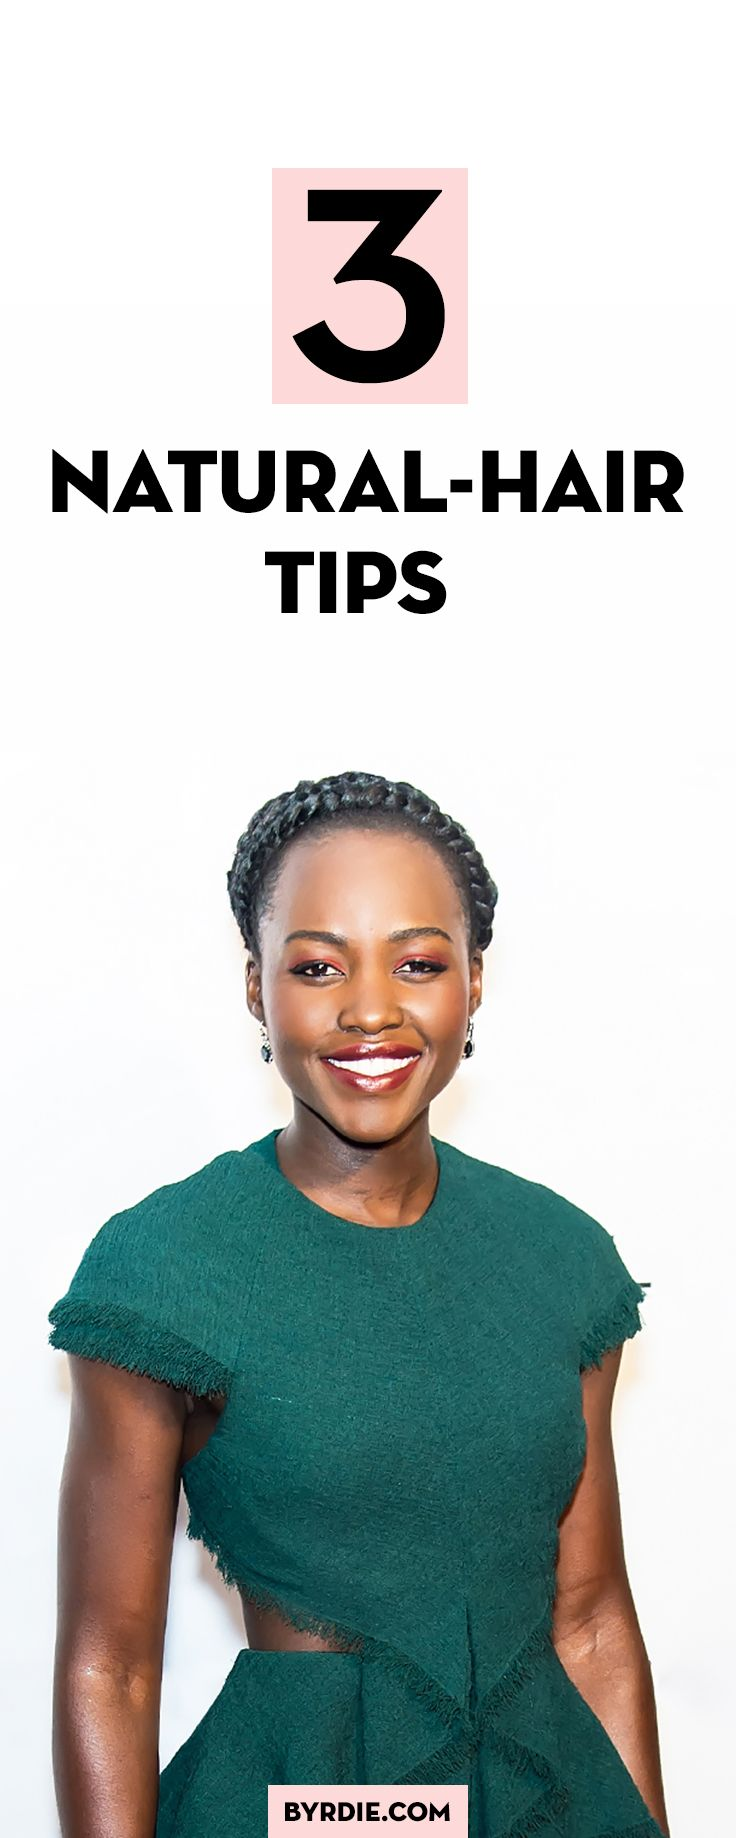 Life-saving tips for girls with natural hair